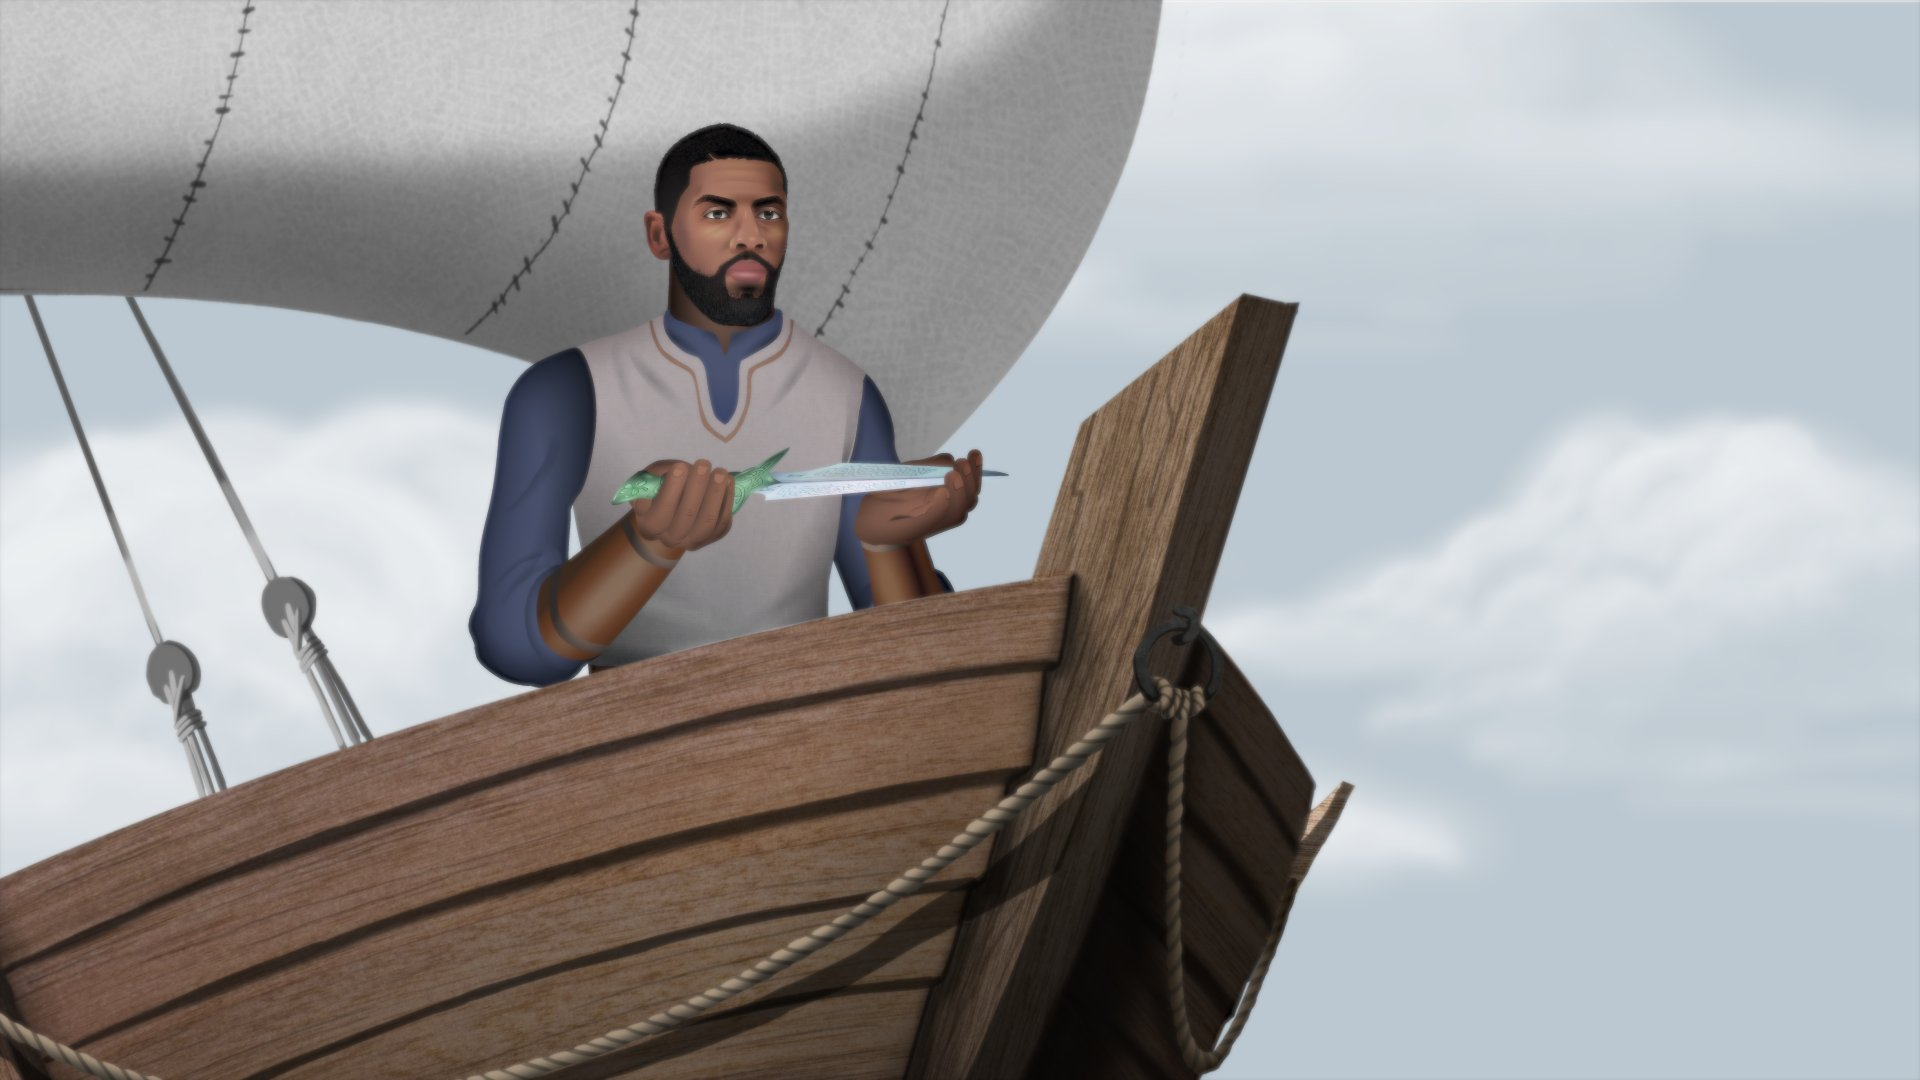 �� GAME OF ZONES ALL-STAR SPECIAL ��  Kyrie bids farewell to Cleveland and heads for the edge of the world �� https://t.co/bZUJQ2IQGo